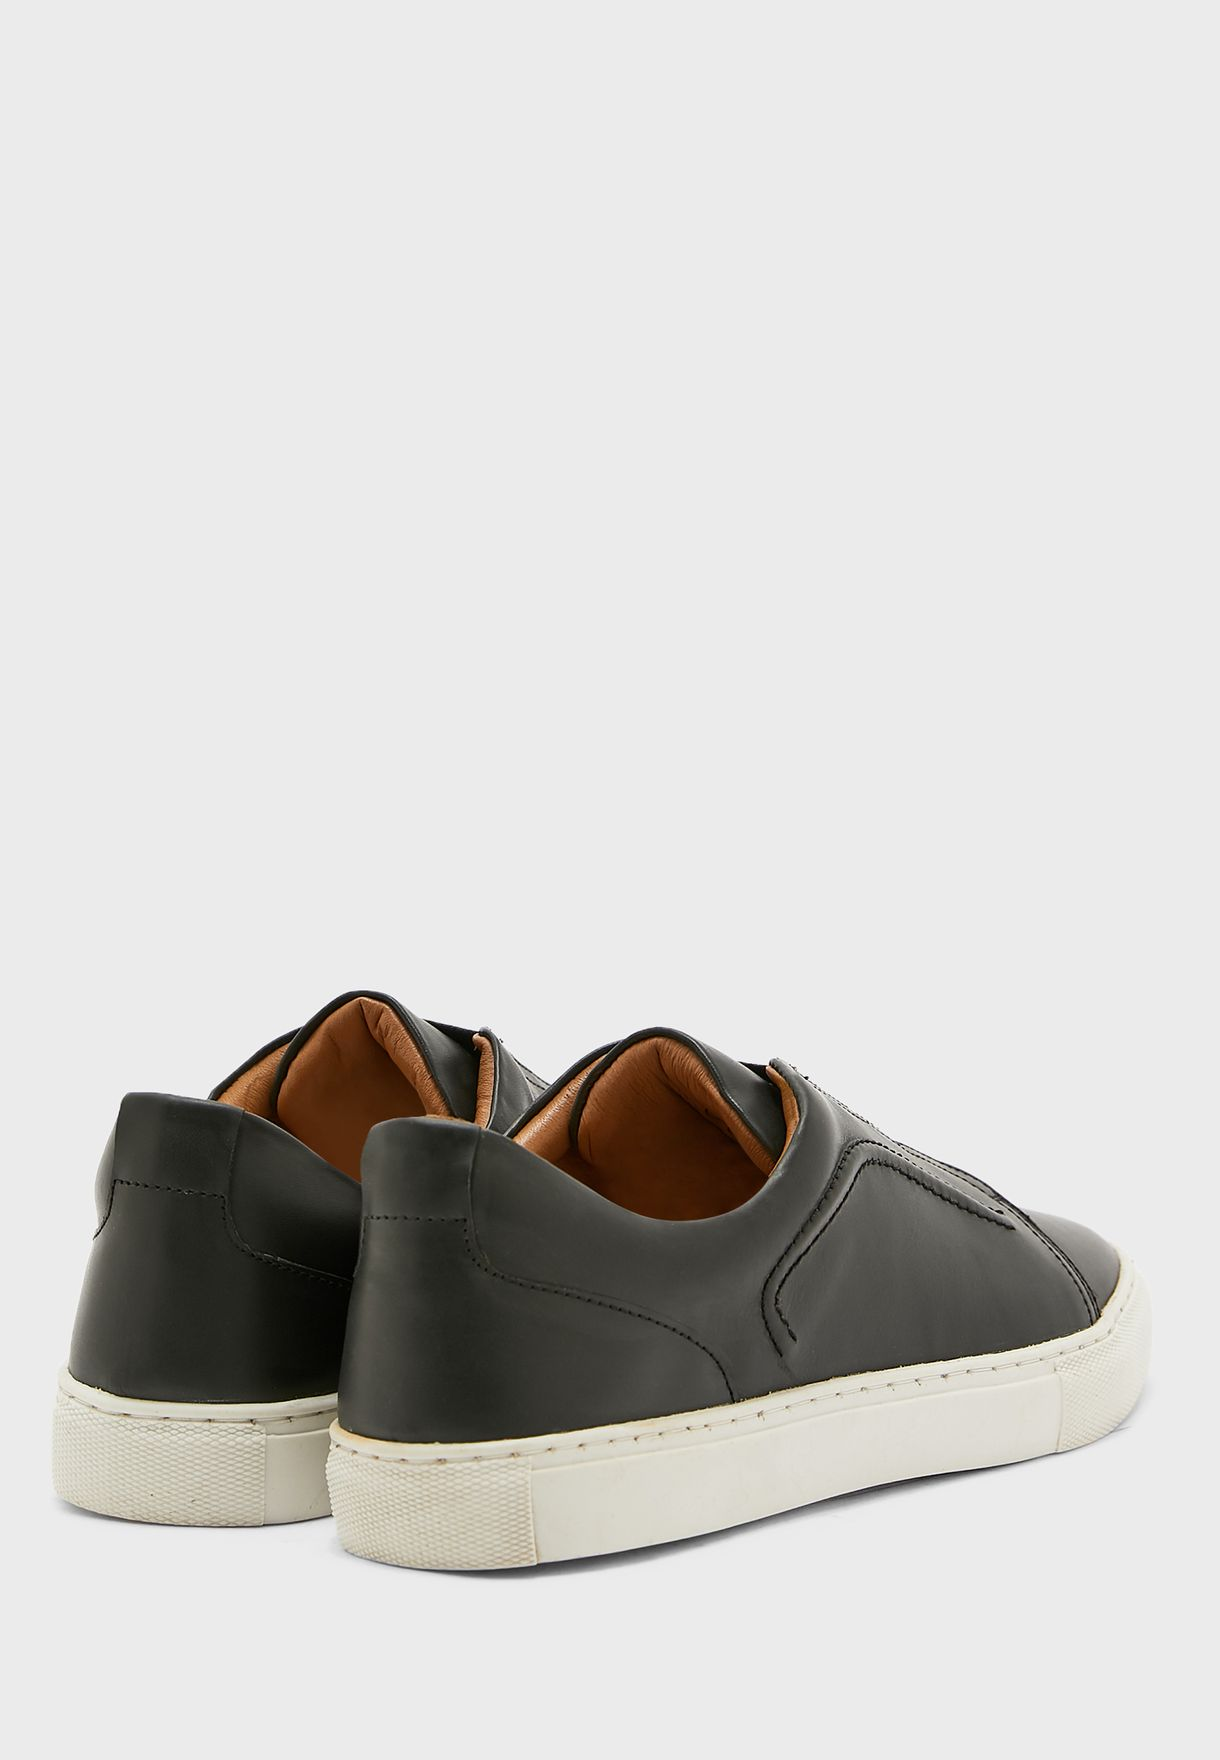 Genuine Leather Casual Slip Ons